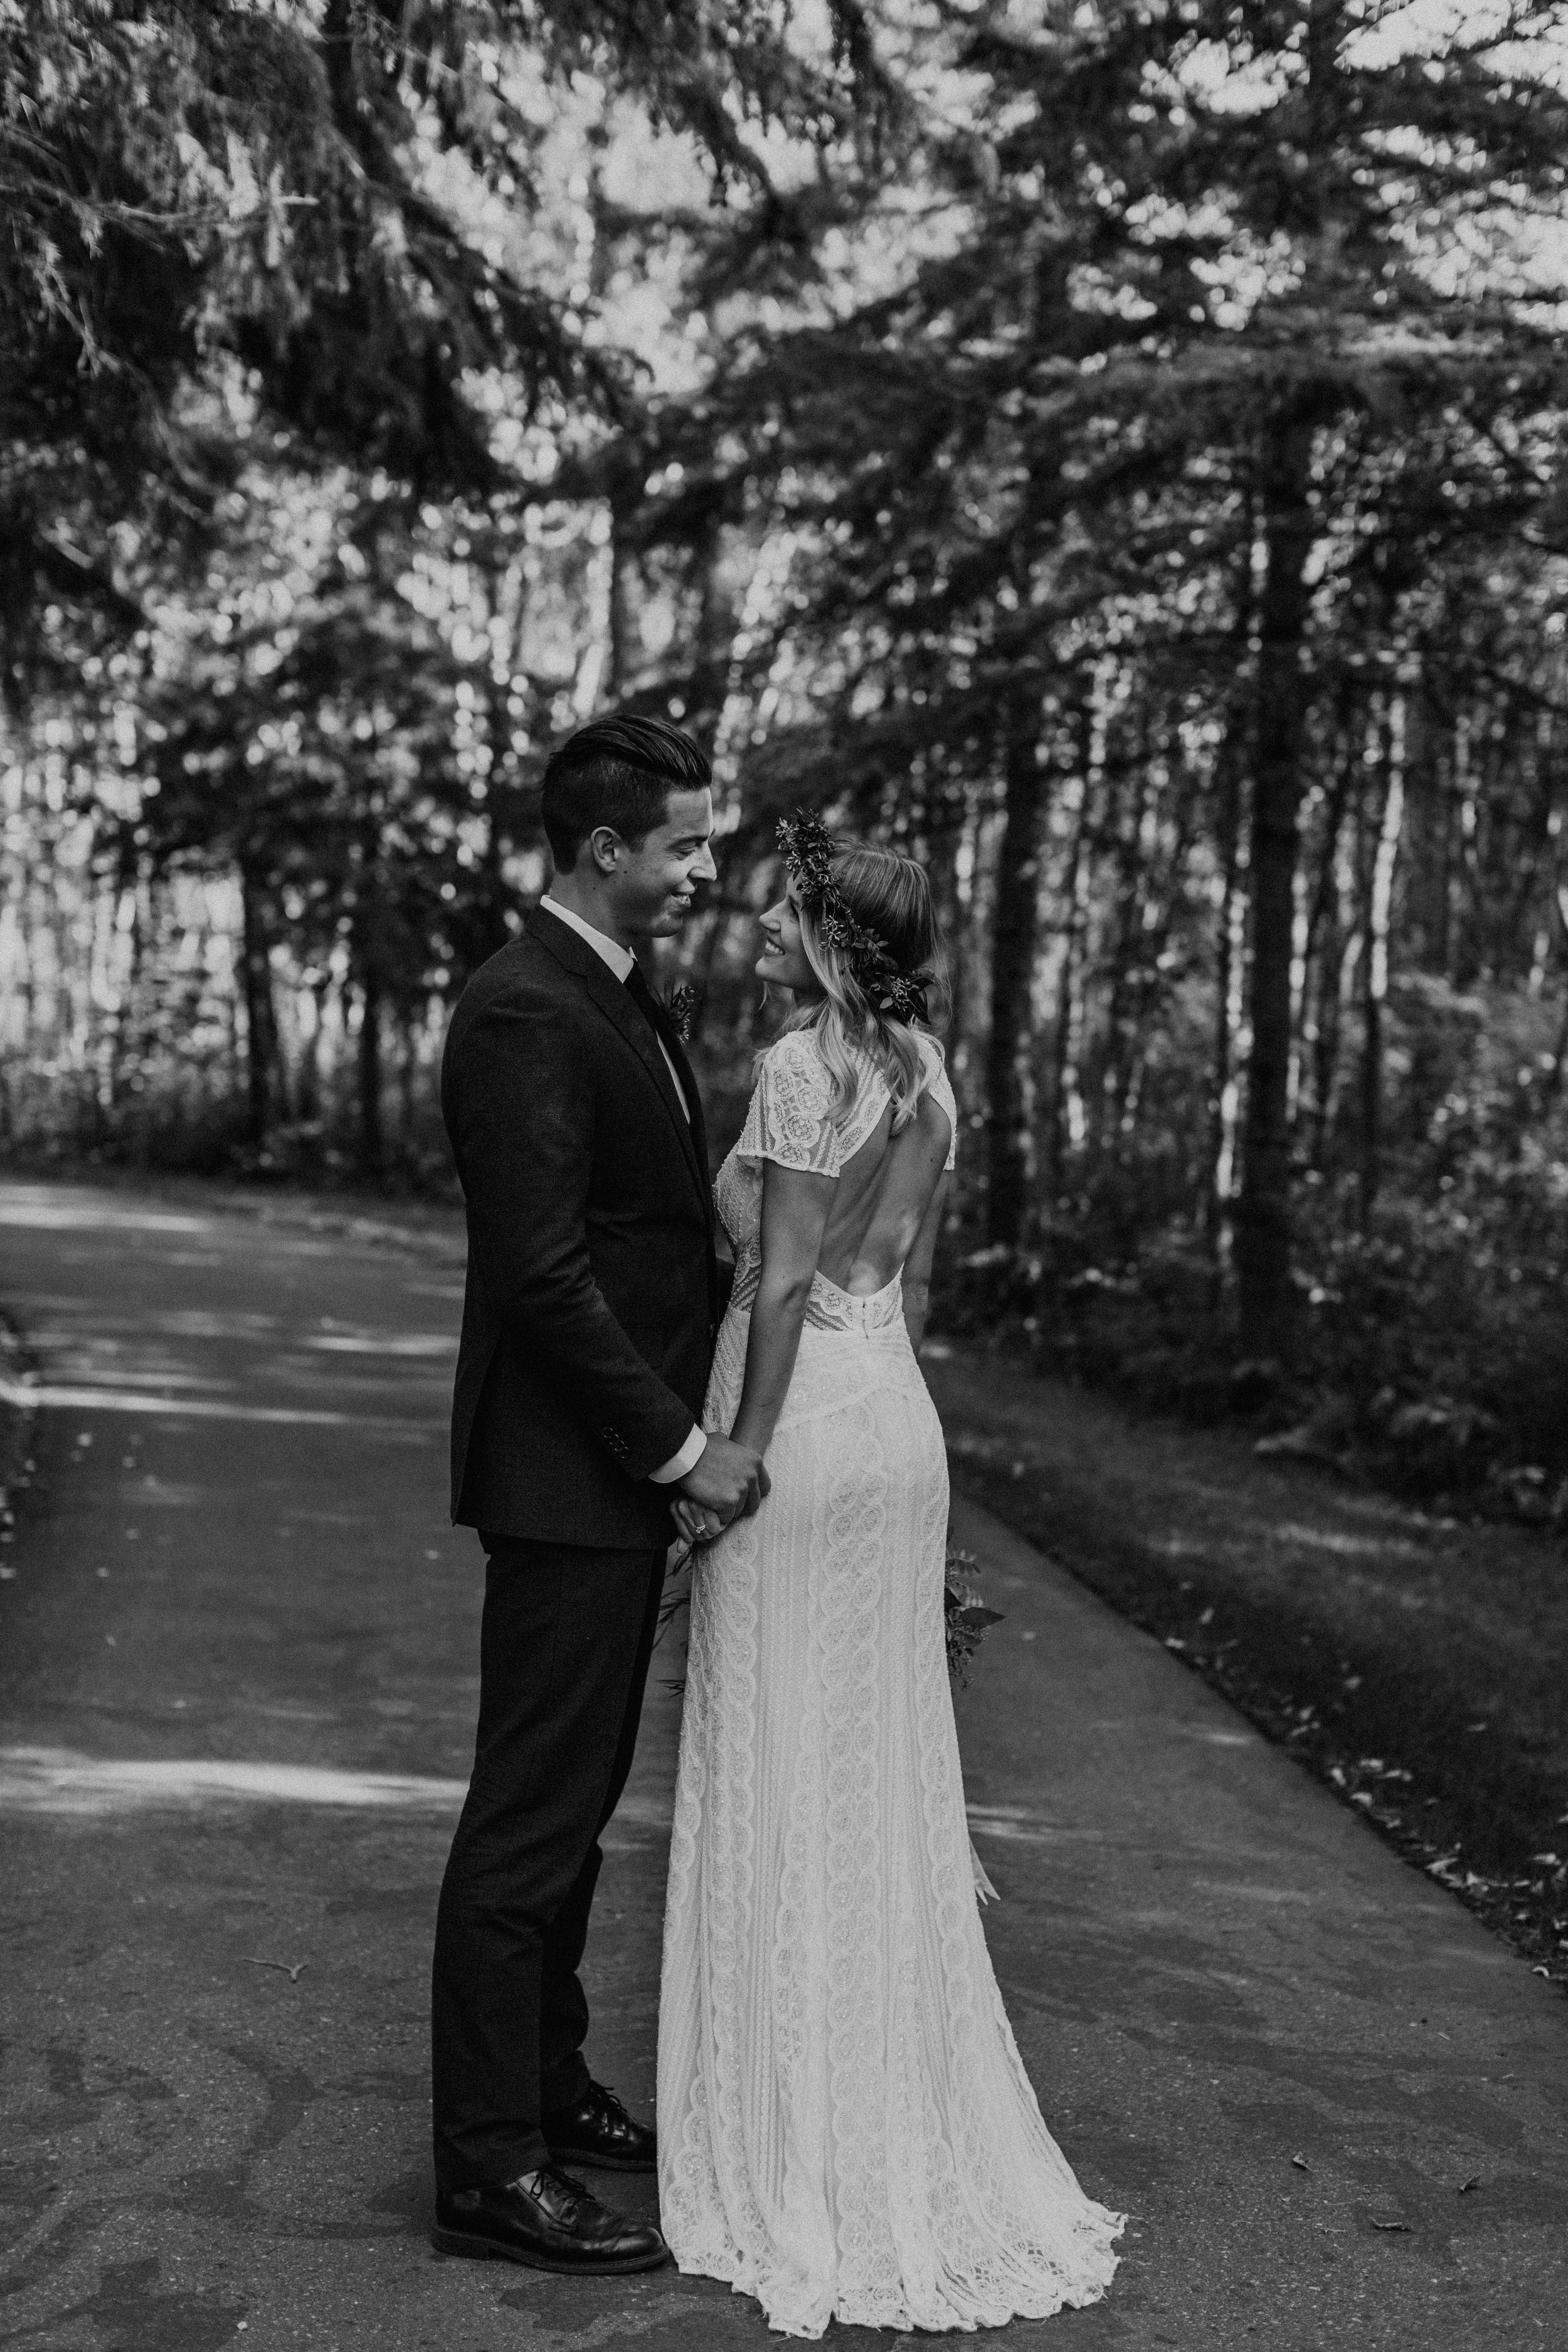 Bride and groom wedding day portraits | Sherwood Park Backyard wedding Canada, Michelle Larmand Photography